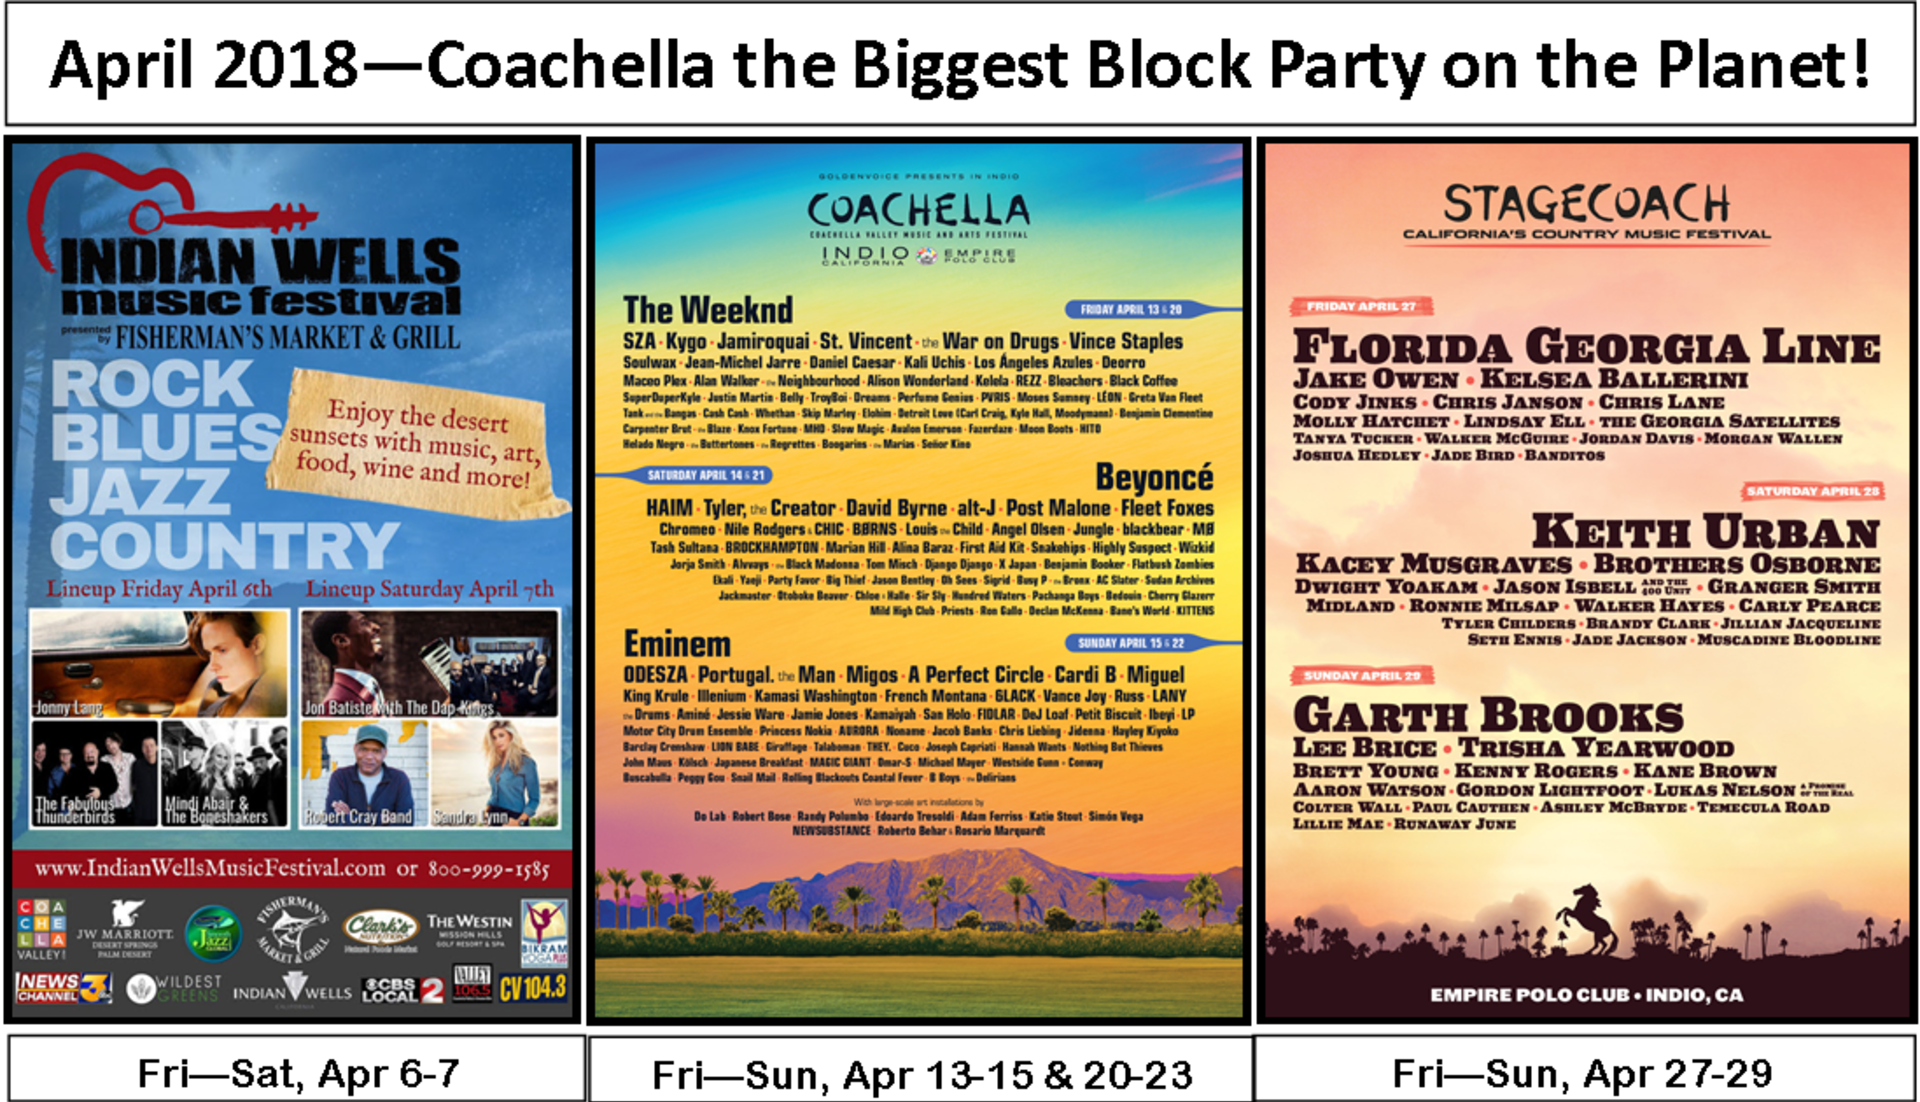 Coachella Fest, Stagecoach – The Biggest Block Party on the Planet!